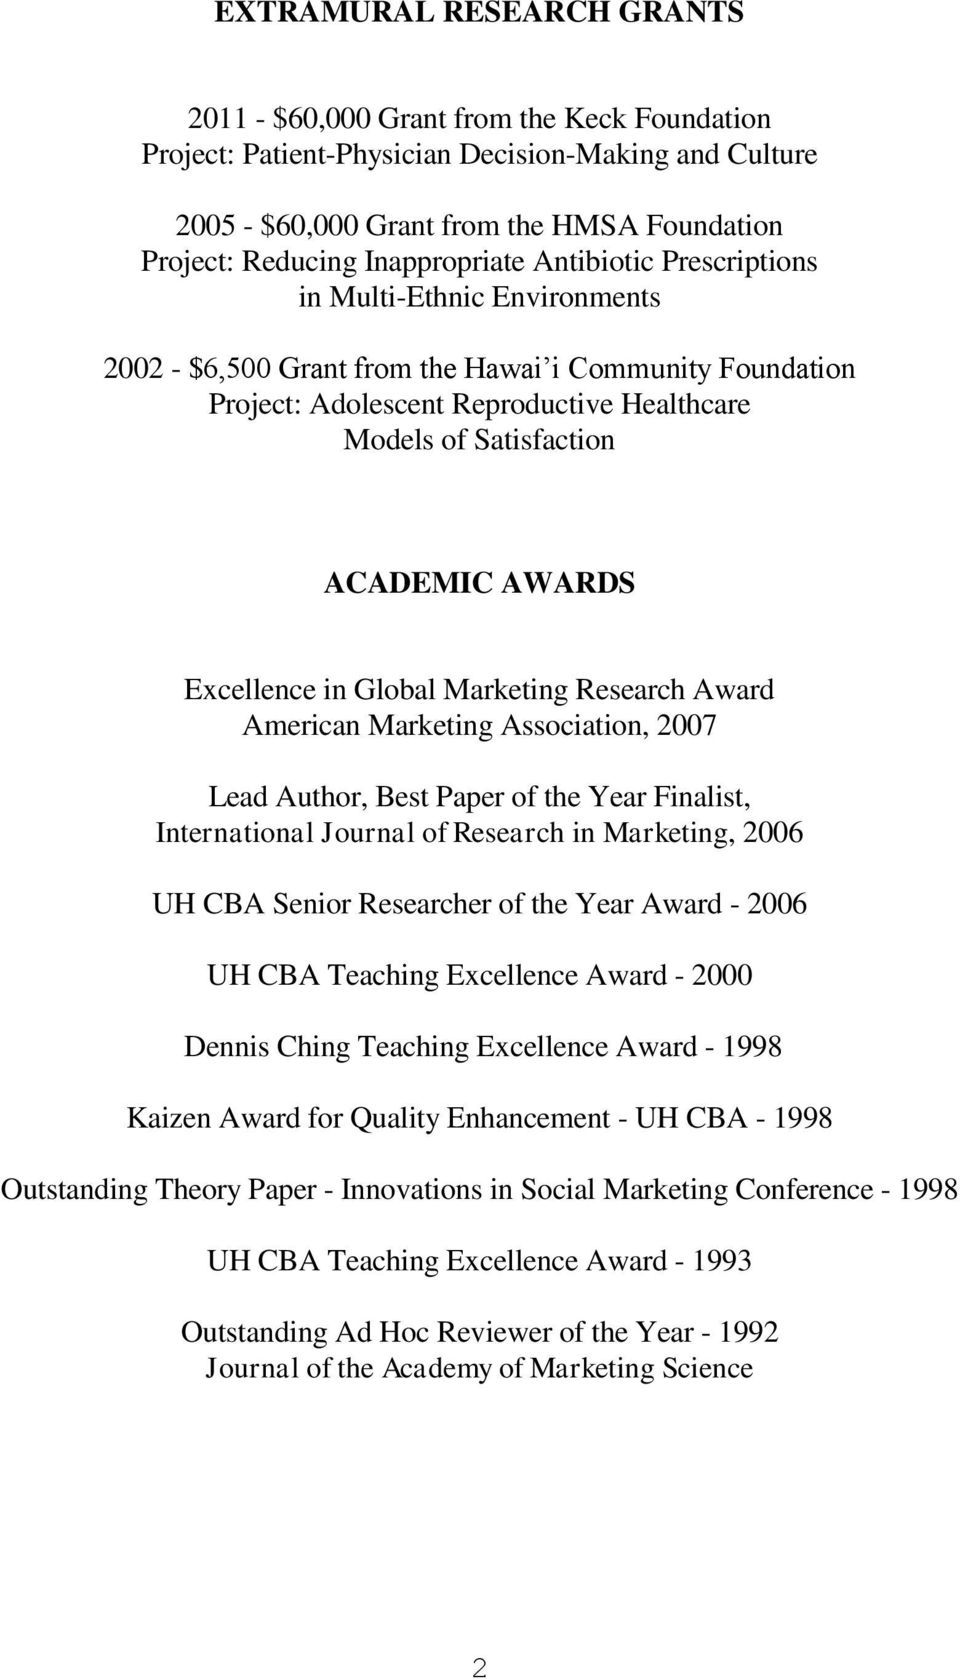 ACADEMIC AWARDS Excellence in Global Marketing Research Award American Marketing Association, 2007 Lead Author, Best Paper of the Year Finalist, International Journal of Research in Marketing, 2006